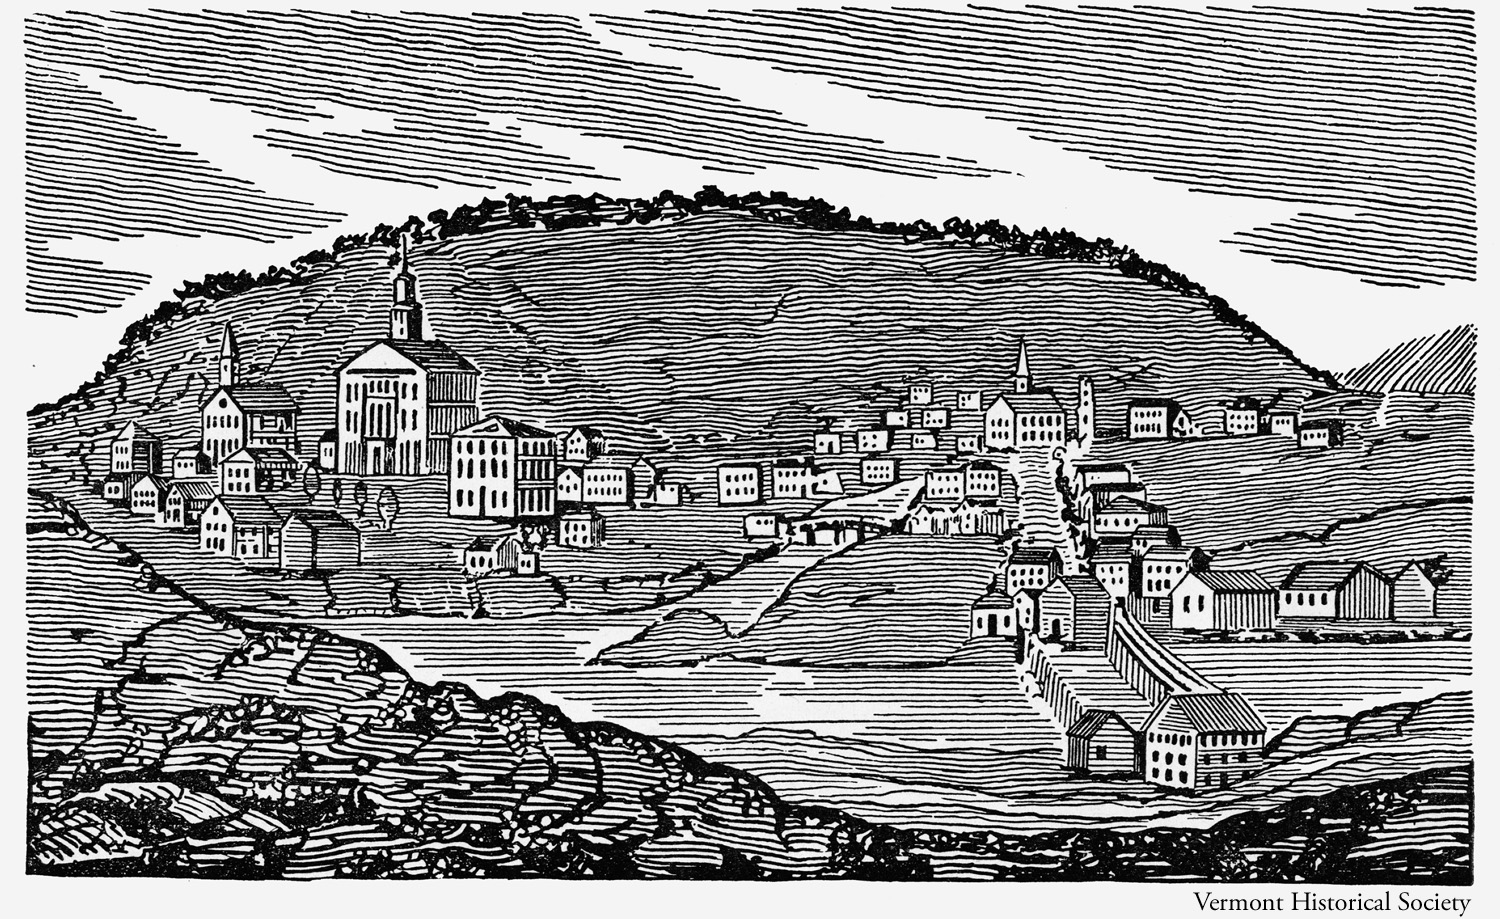 1821 View of Montpelier, Vermont